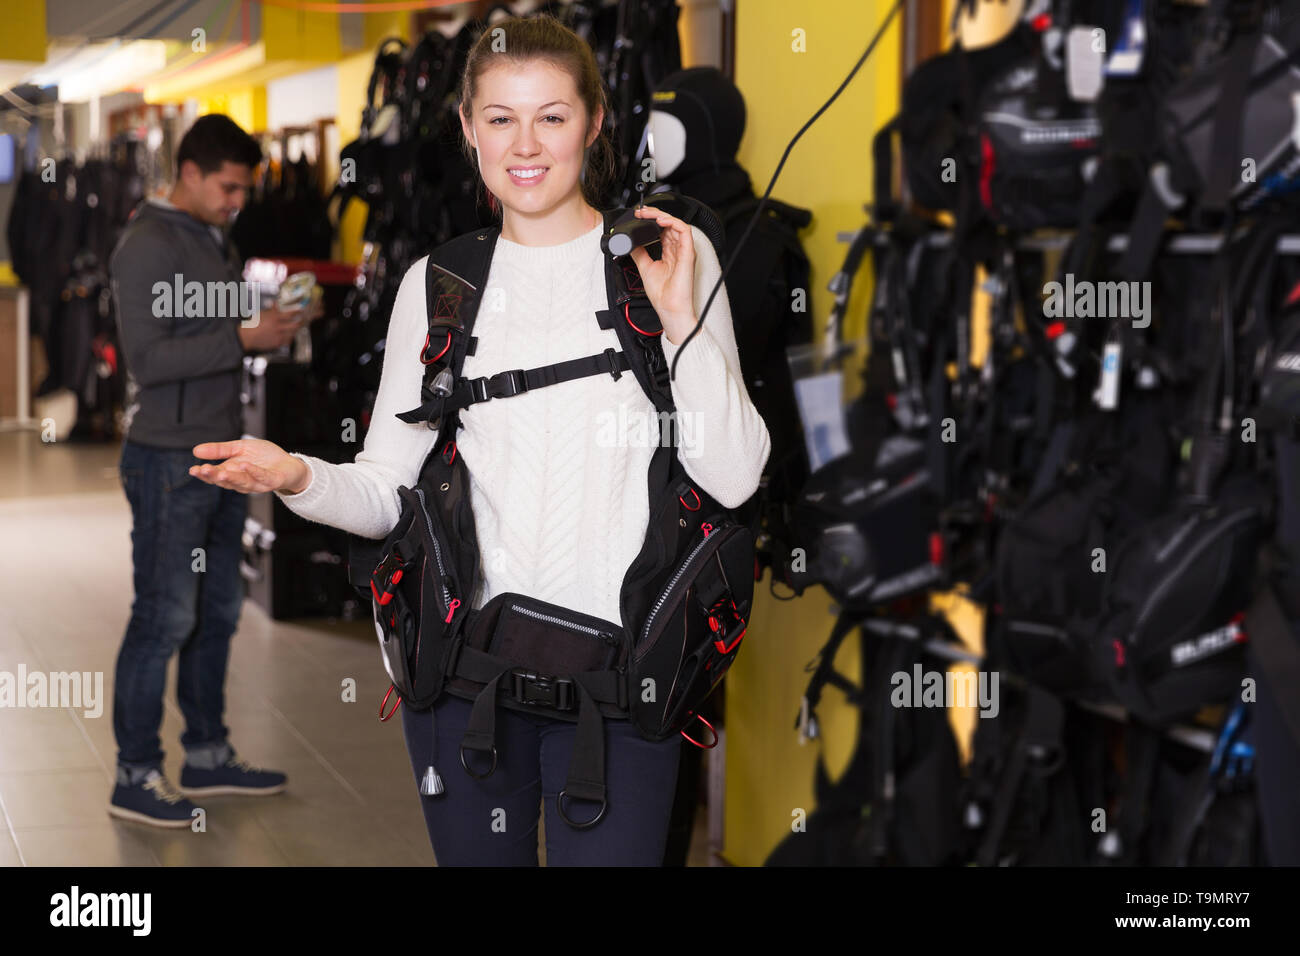 glad woman is standing in new equipment for diving in the store. - Stock Image